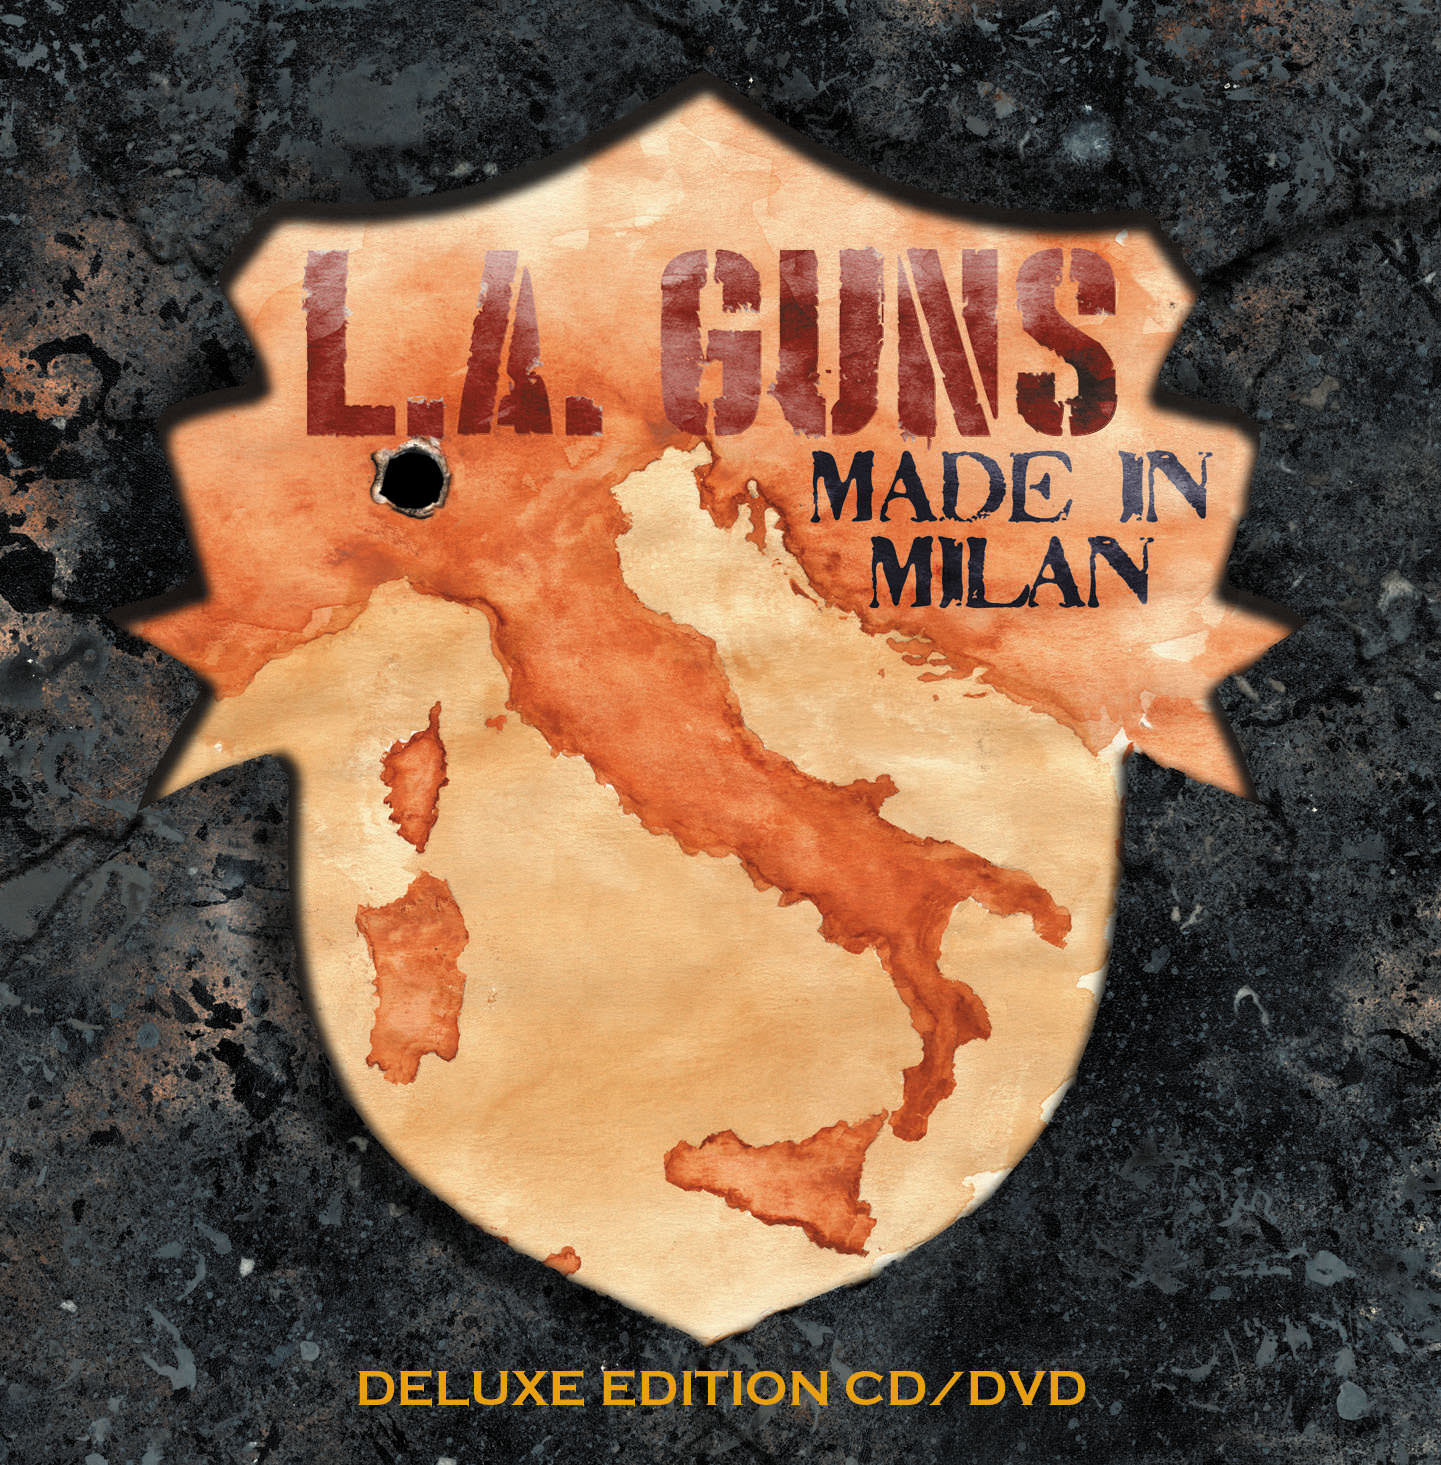 """Made In Milan is one of the few records that capture that true live concert experience. From the first riff to last roar of the fans, L.A. Guns have created something very special for both new and old fans alike.    -I'm Music Magazine    The duo that defined LA Guns in their classic years is back again, with a strong performance in an exotic, worldly destination. Guns proves why he's one of the go-to guys for guitar, and Lewis' voice is as strong as ever, giving these songs the soul and the energy that they require.    -zrockr    It (Made in Milan) marks a new chapter and a newfound enthusiasm within the band, which is pretty cool in and of itself, and it is splendid to hear the rapturous audience go ape-shit to the band's song material both old and new    -Eternal Terror    If you want to hear a classic Sunset Strip band at their 2018 best, Made in Milan is just what you are looking for    -Shockwave Magazine   The reunion of Tracii Guns and Phil Lewis under the L.A. Guns banner has received much critical and fan praise with the release of their first album together in over 17 years, """"The Missing Peace"""", last October. Prior to that album's release, with a new-found energy and enthusiasm, L.A. Guns stormed onto the stage in Milan, IT in April 2017 at the  Frontiers Rock Festival . Their scorching, high octane, mind-blowing set was captured on audio and video.  This once in a lifetime performance, aptly named  """"Made in Milan"""" has been released today via  Frontiers Music Srl. A truly spectacular performance that shows a band exploding with energy.  Order this amazing show on CD/DVD, Blu-Ray, Vinyl & Digital HERE: http://radi.al/MadeInMilan    For More Info Visit:    http://www.lagunsmusic.com    https://www.facebook.com/LAGunsOfficial    https://twitter.com/laguns    https://www.instagram.com/laguns/"""